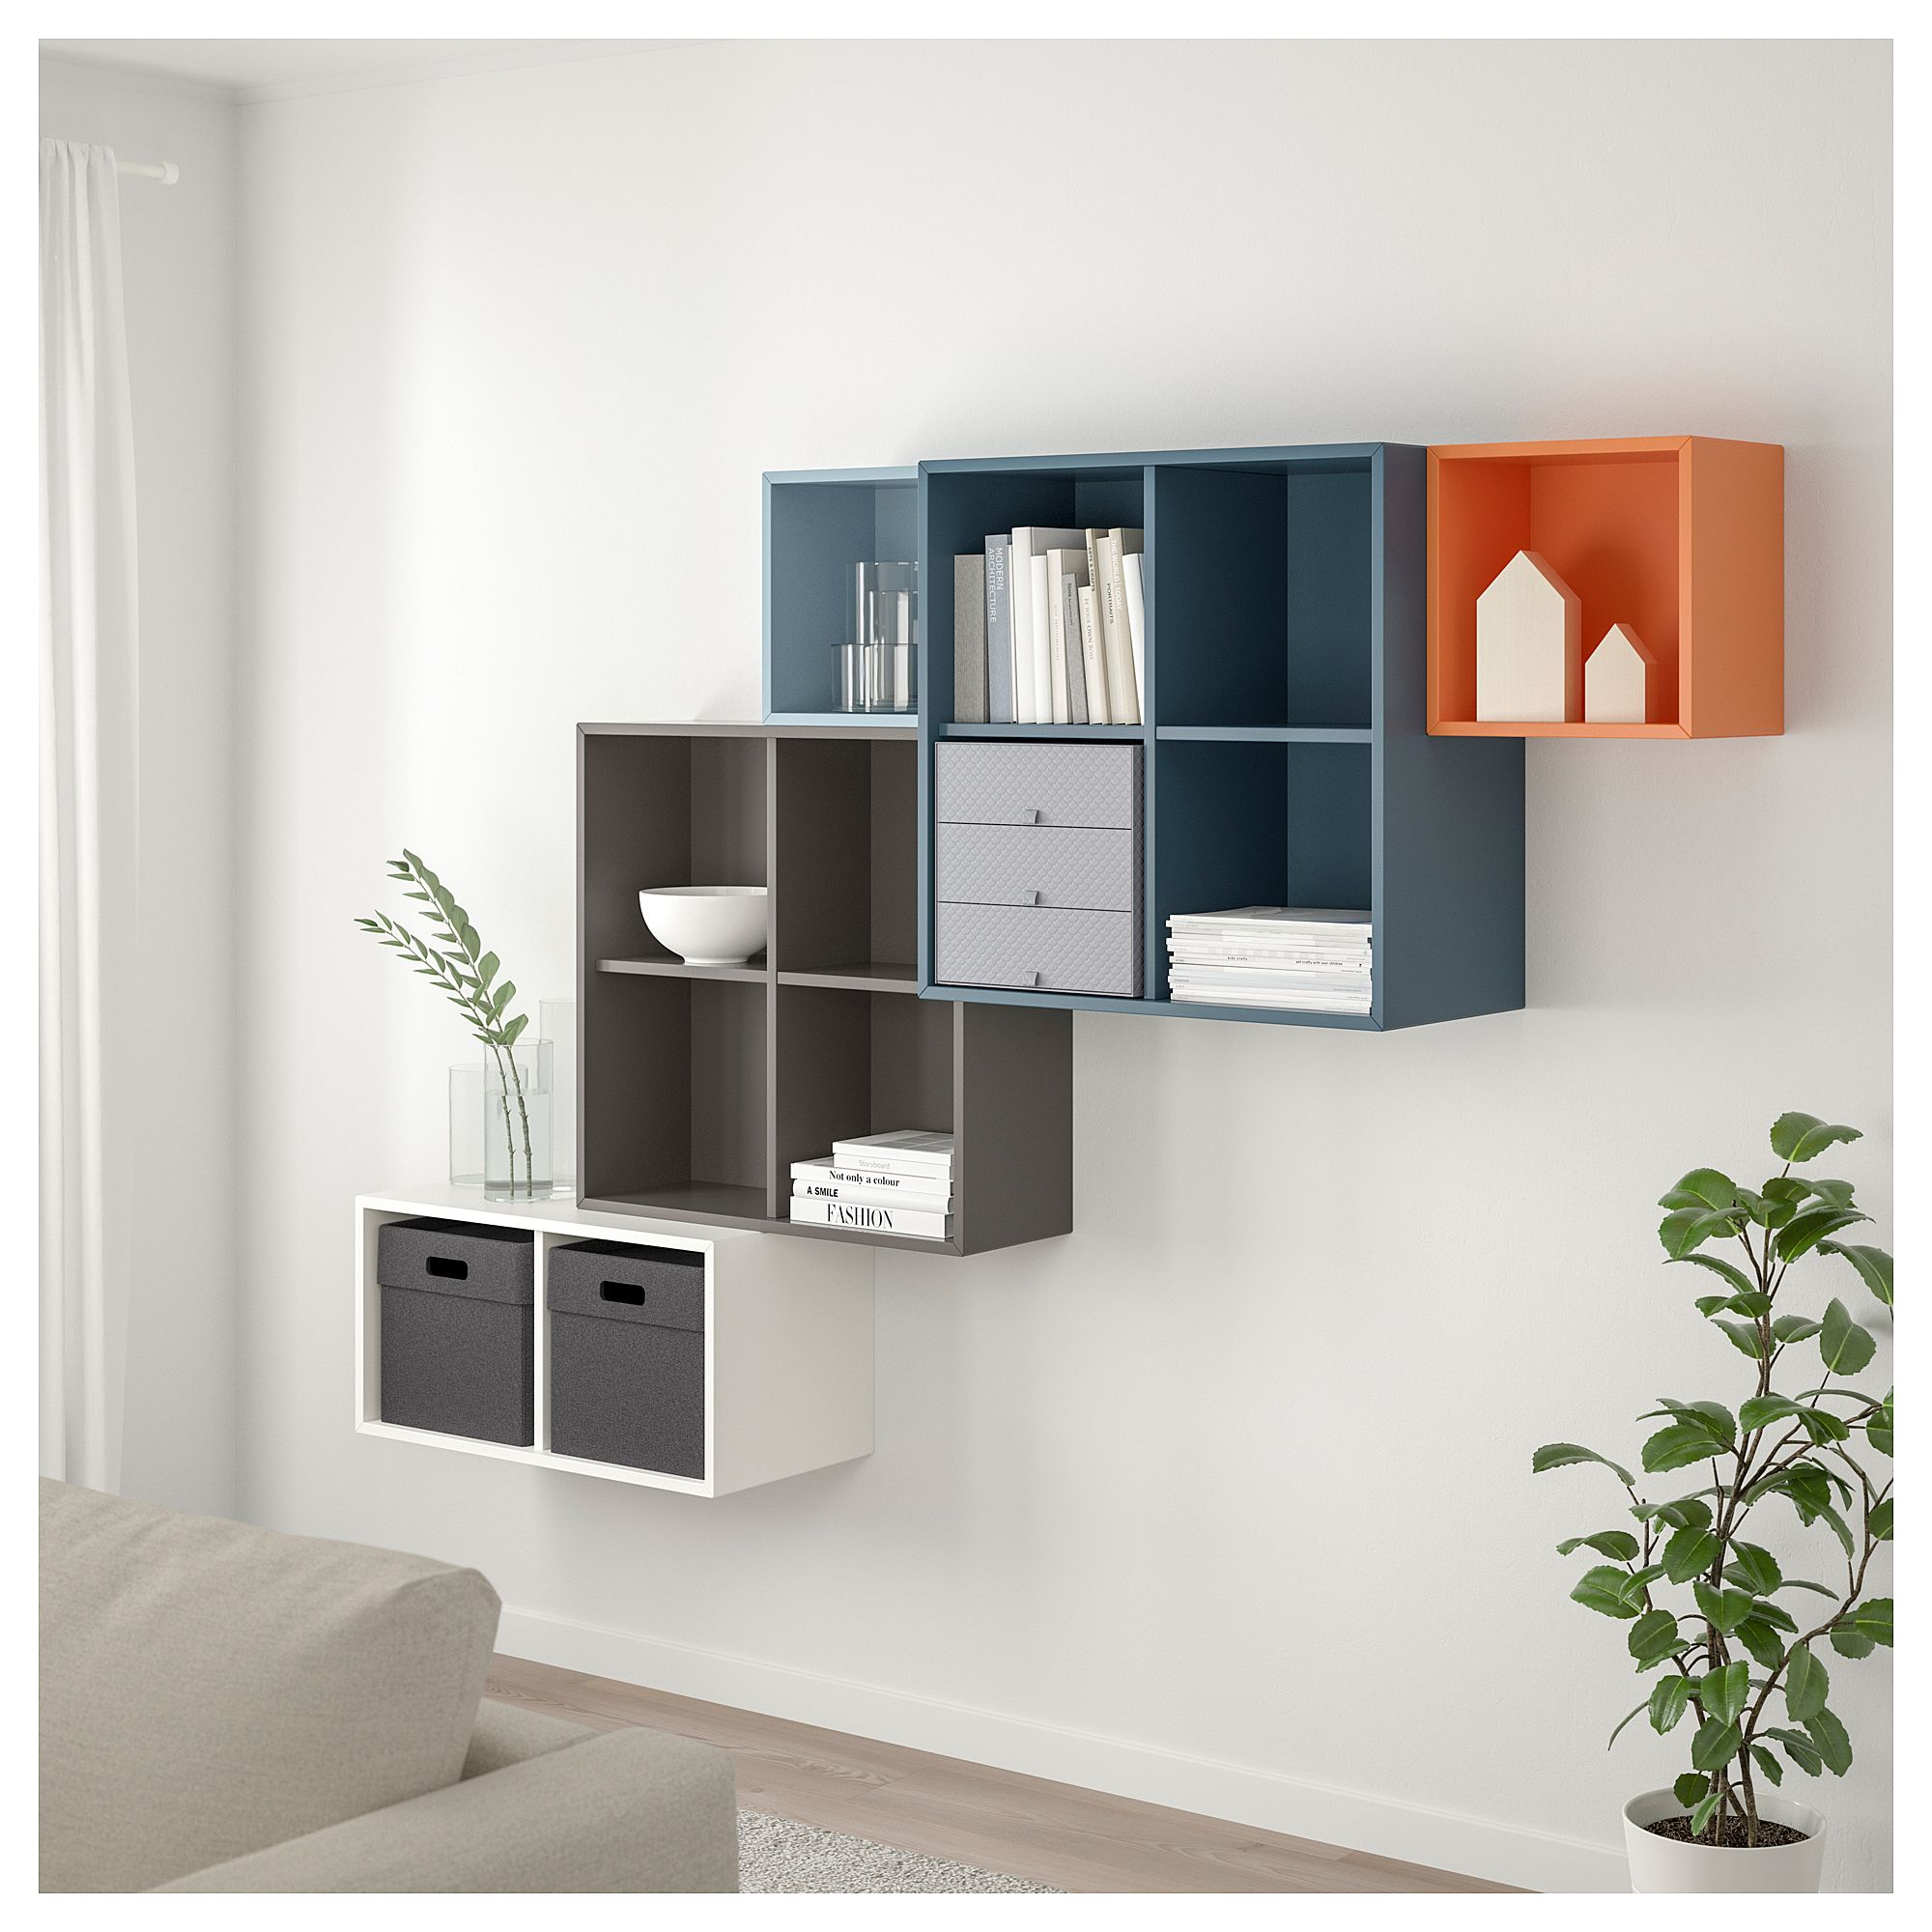 Ikea Kitchen Wall Storage: EKET Wall-mounted Cabinet Combination Multicolor